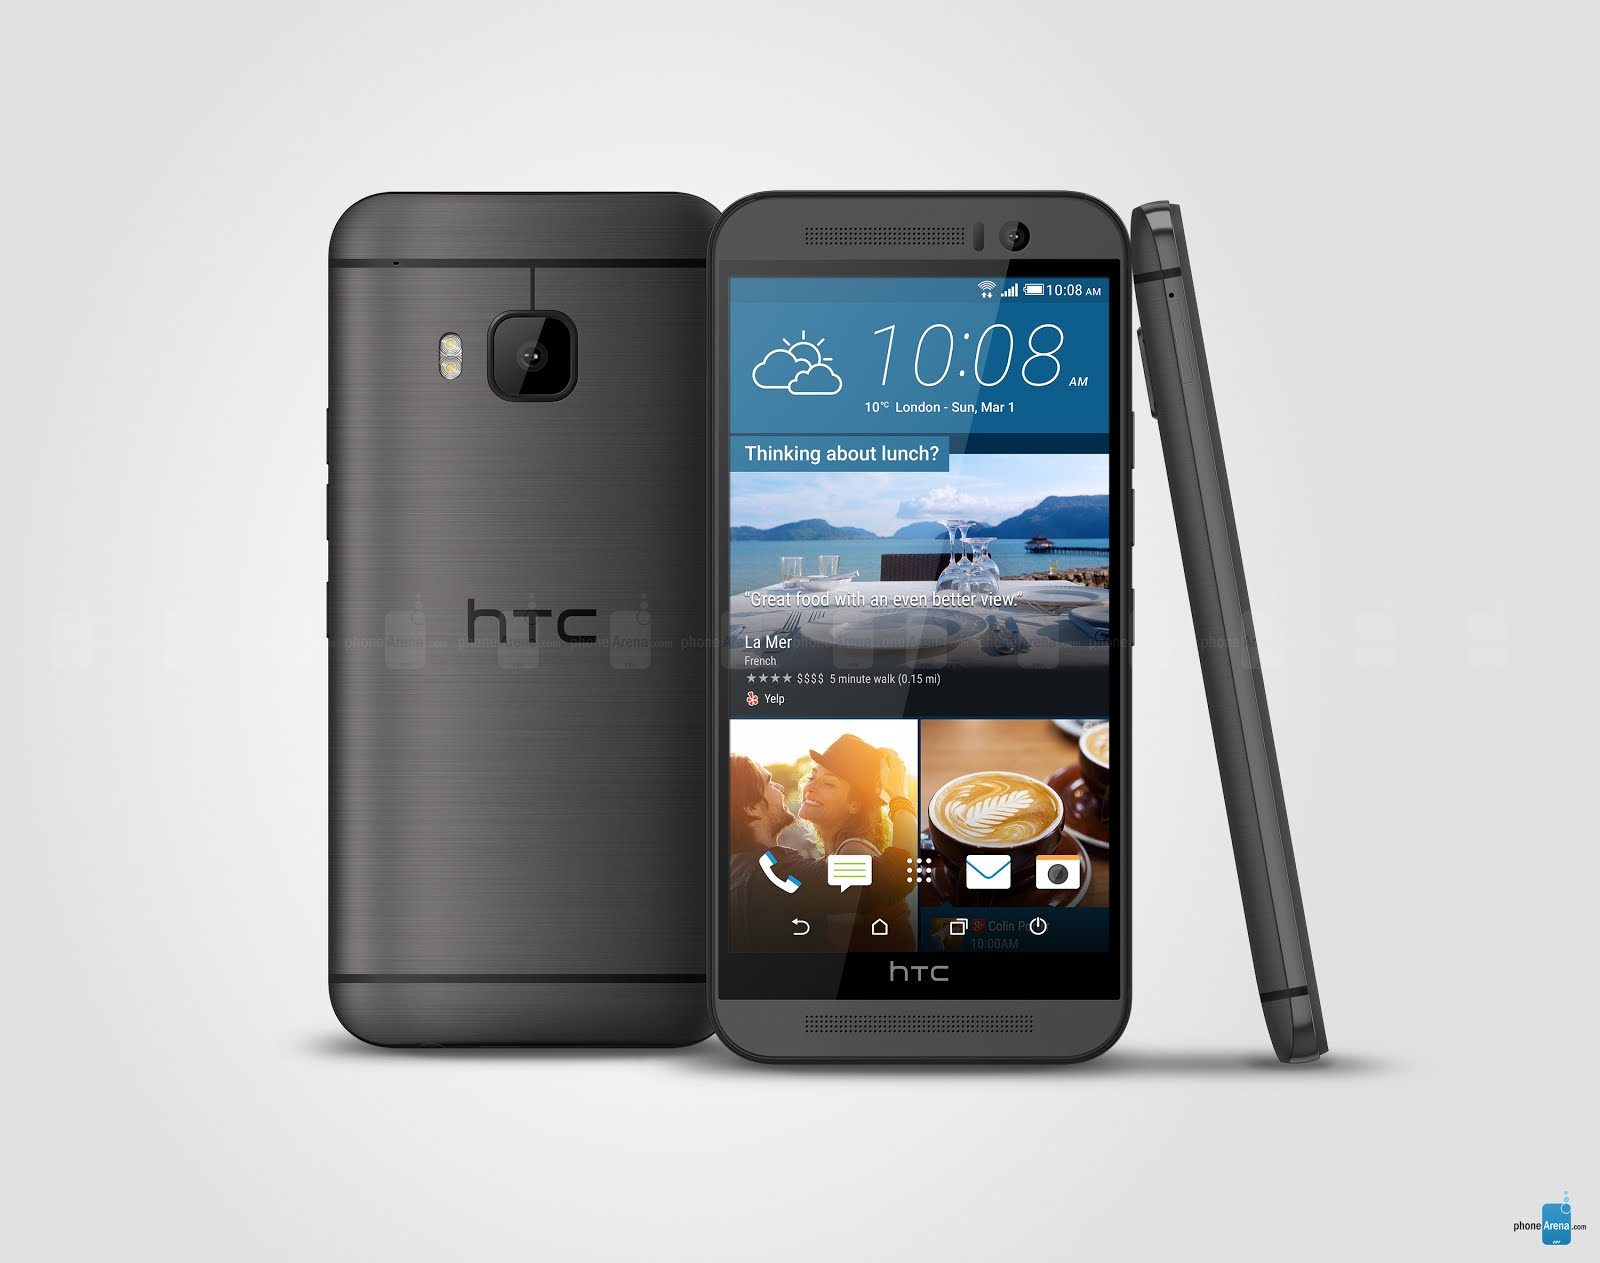 My Phone is HTC One M9.